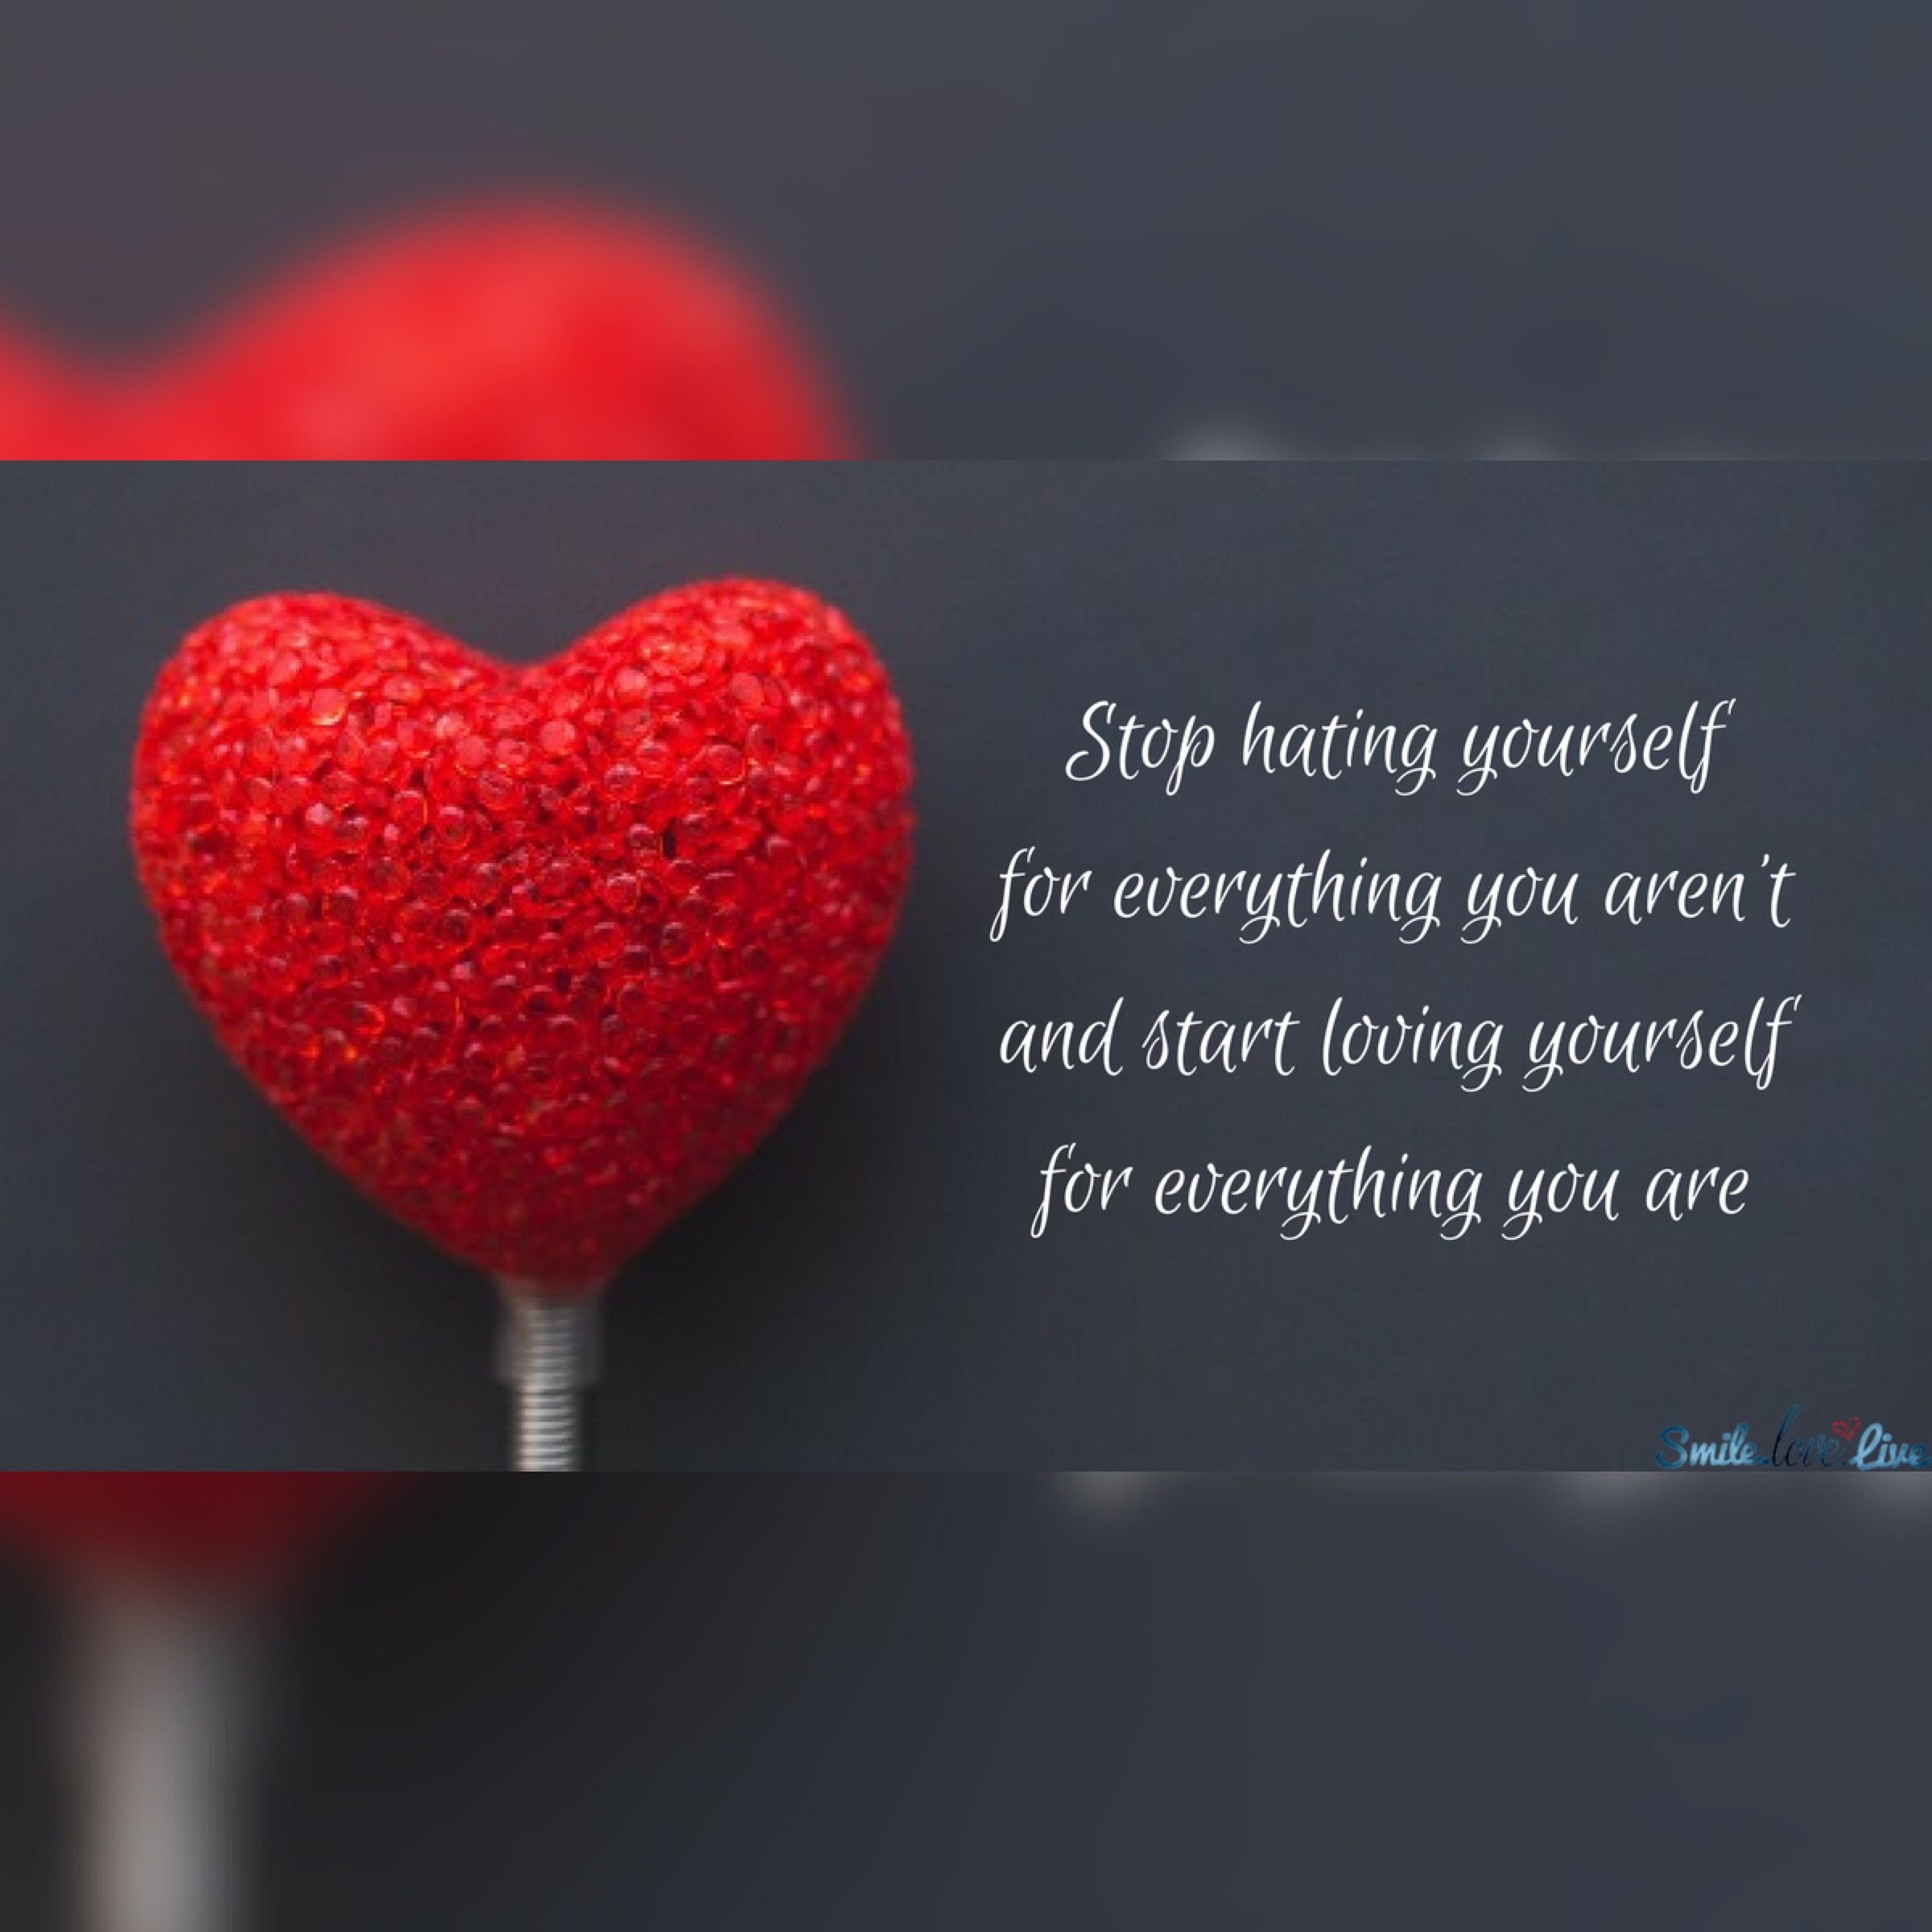 Loving Yourself Quotes Inspirational Quotes  Stop Hating Yourself For Everything You